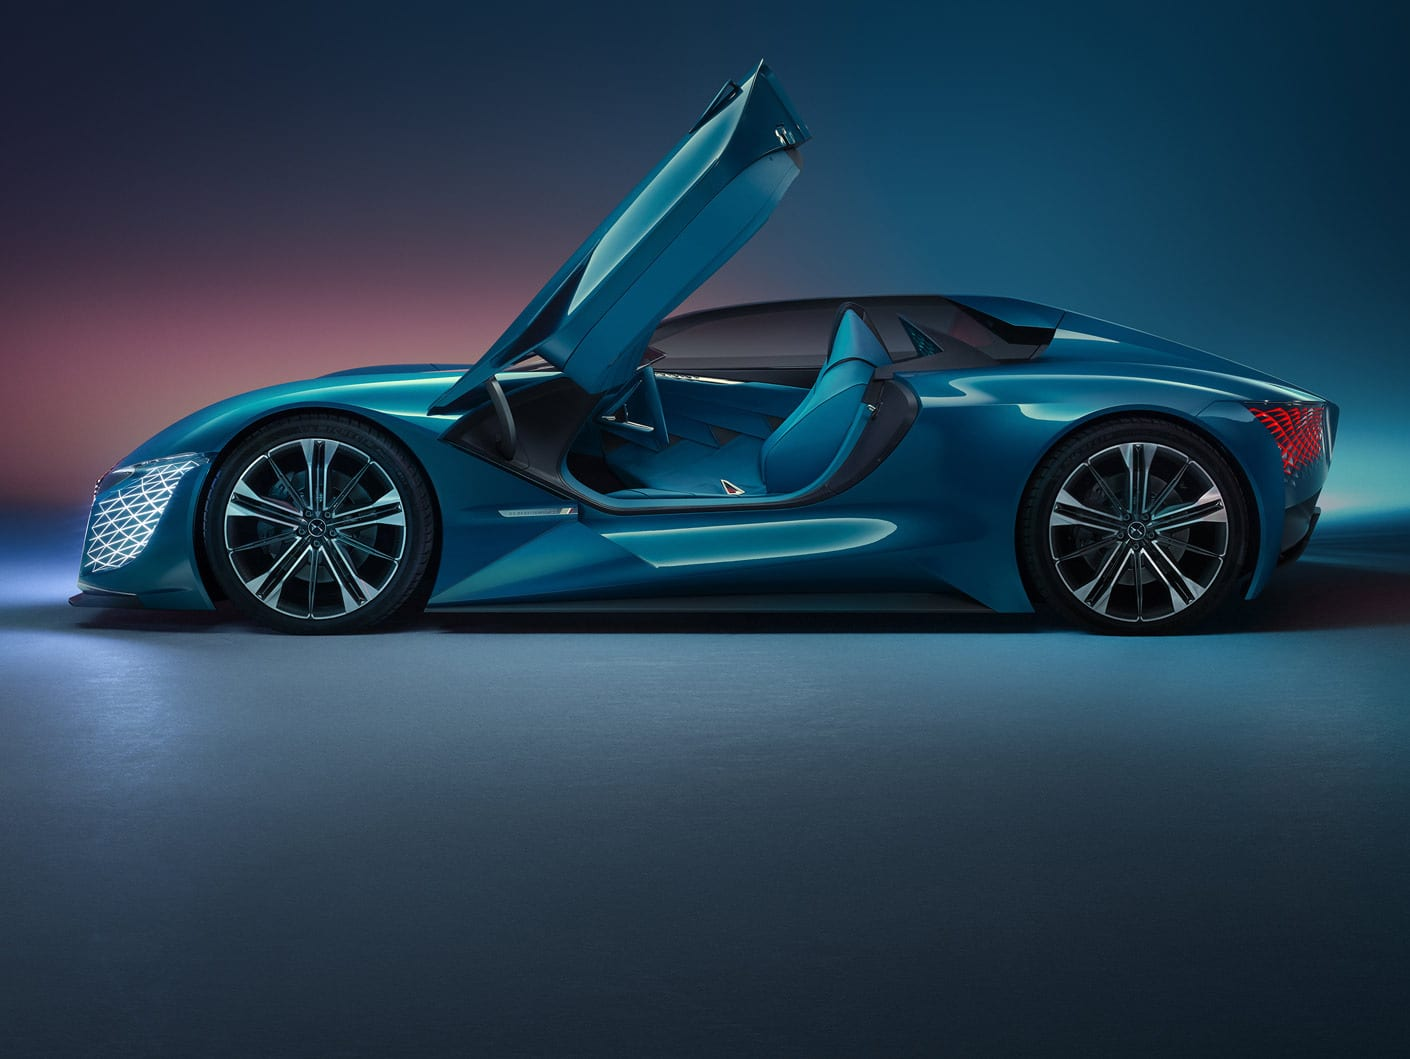 The DS X E-Tense features Elytre door that grants entry to the driver. Image via DS